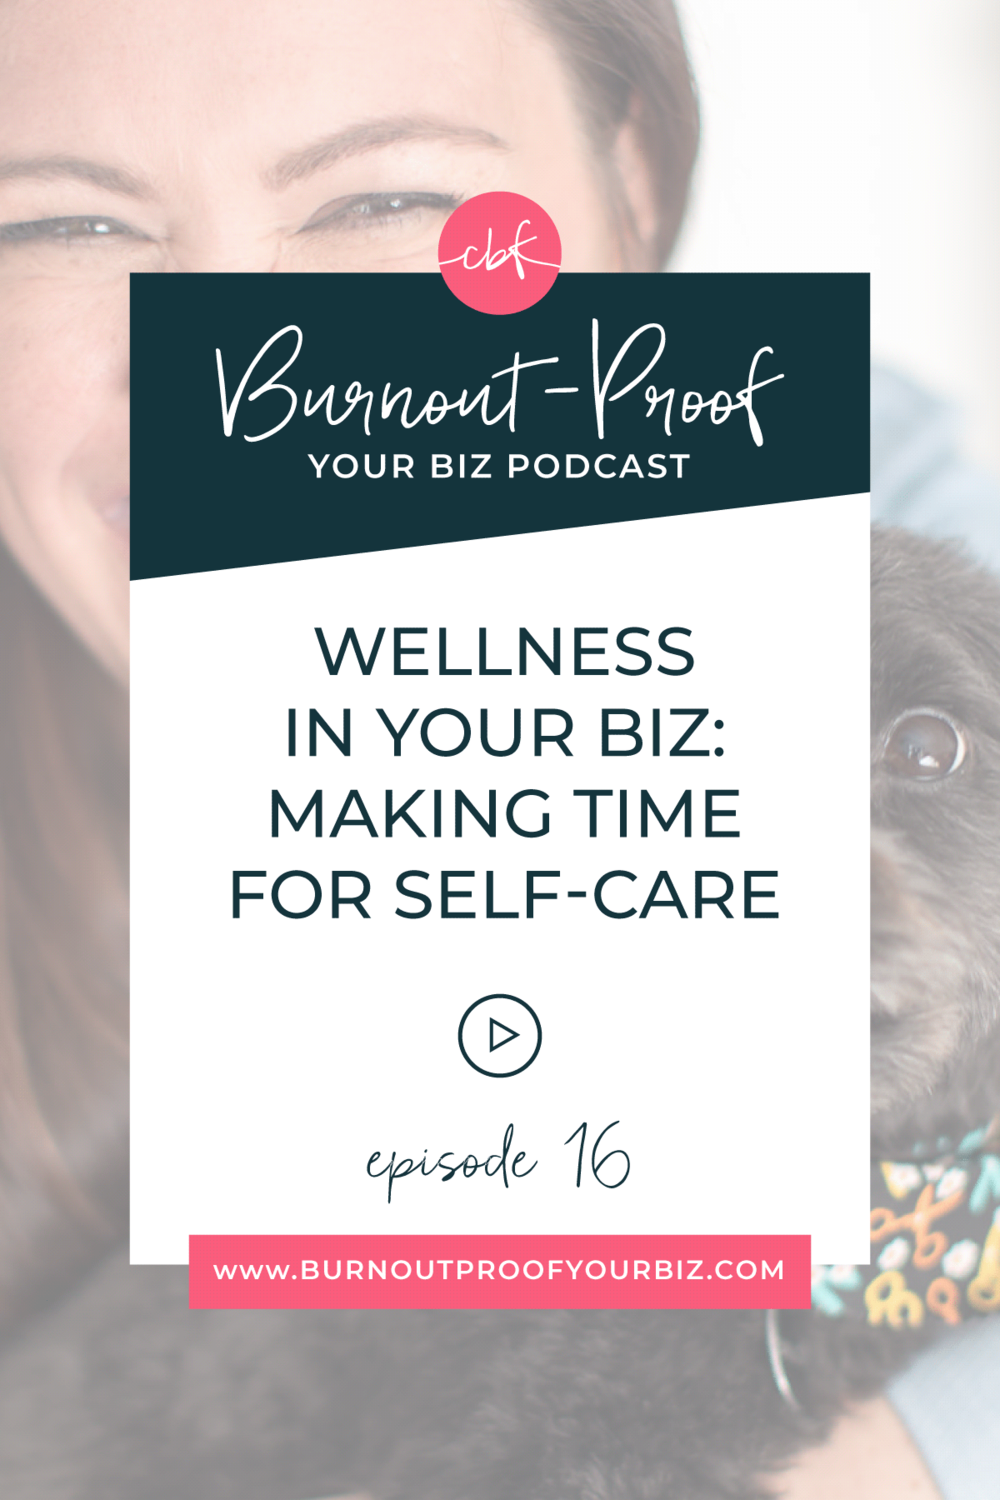 FREE DOWNLOAD | Burnout-Proof Your Biz Podcast with Chelsea B Foster | Episode 016 - Wellness In Your Biz: Making Time for Self-Care | Learn how to run your biz and live your dream life on your own terms without the fear of burnout.